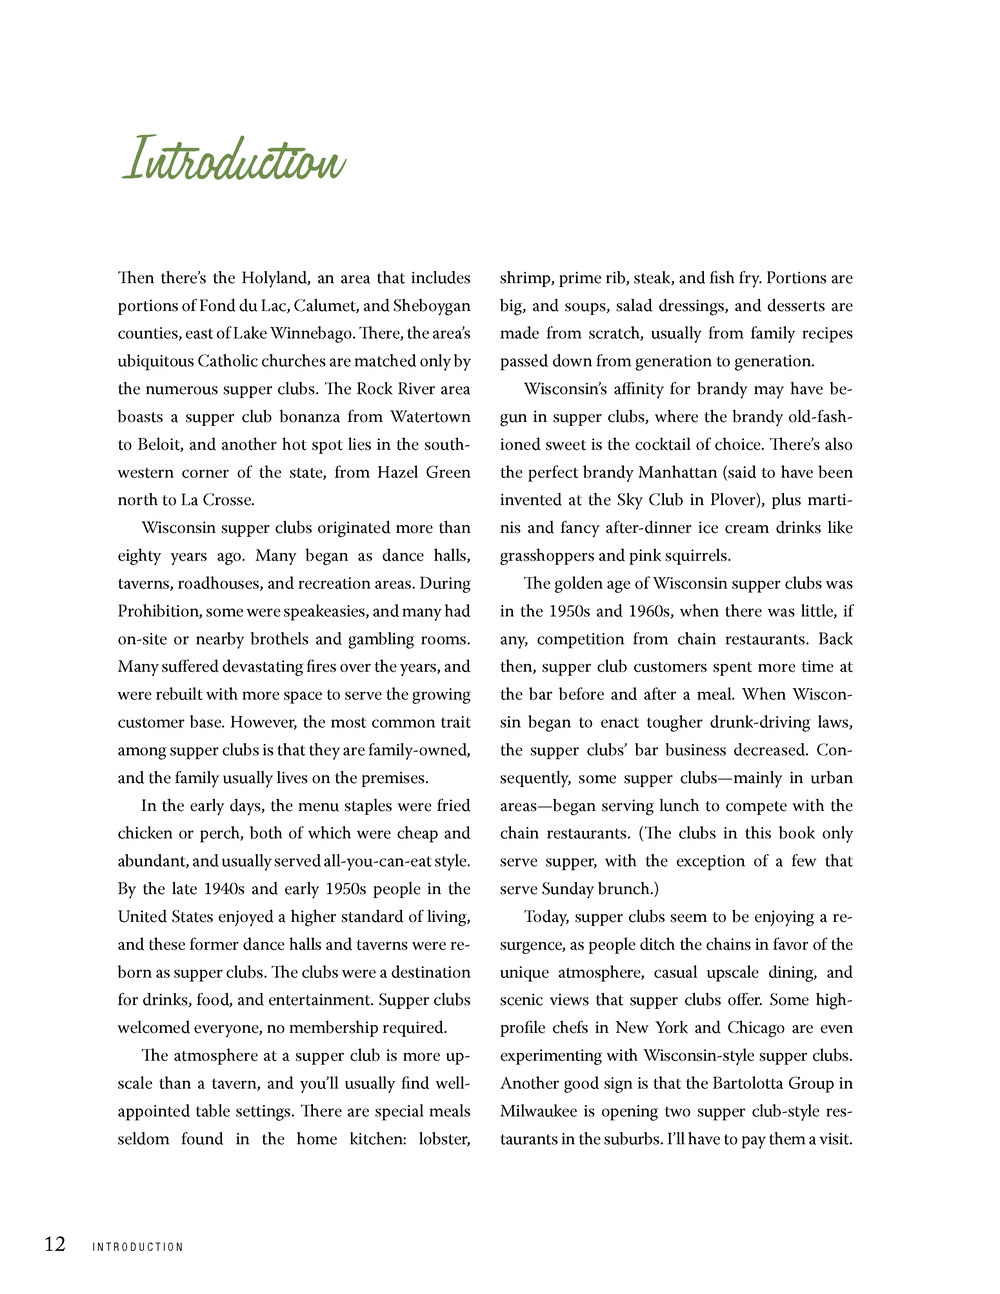 Wisconsin Supper Clubs_Page_07.png